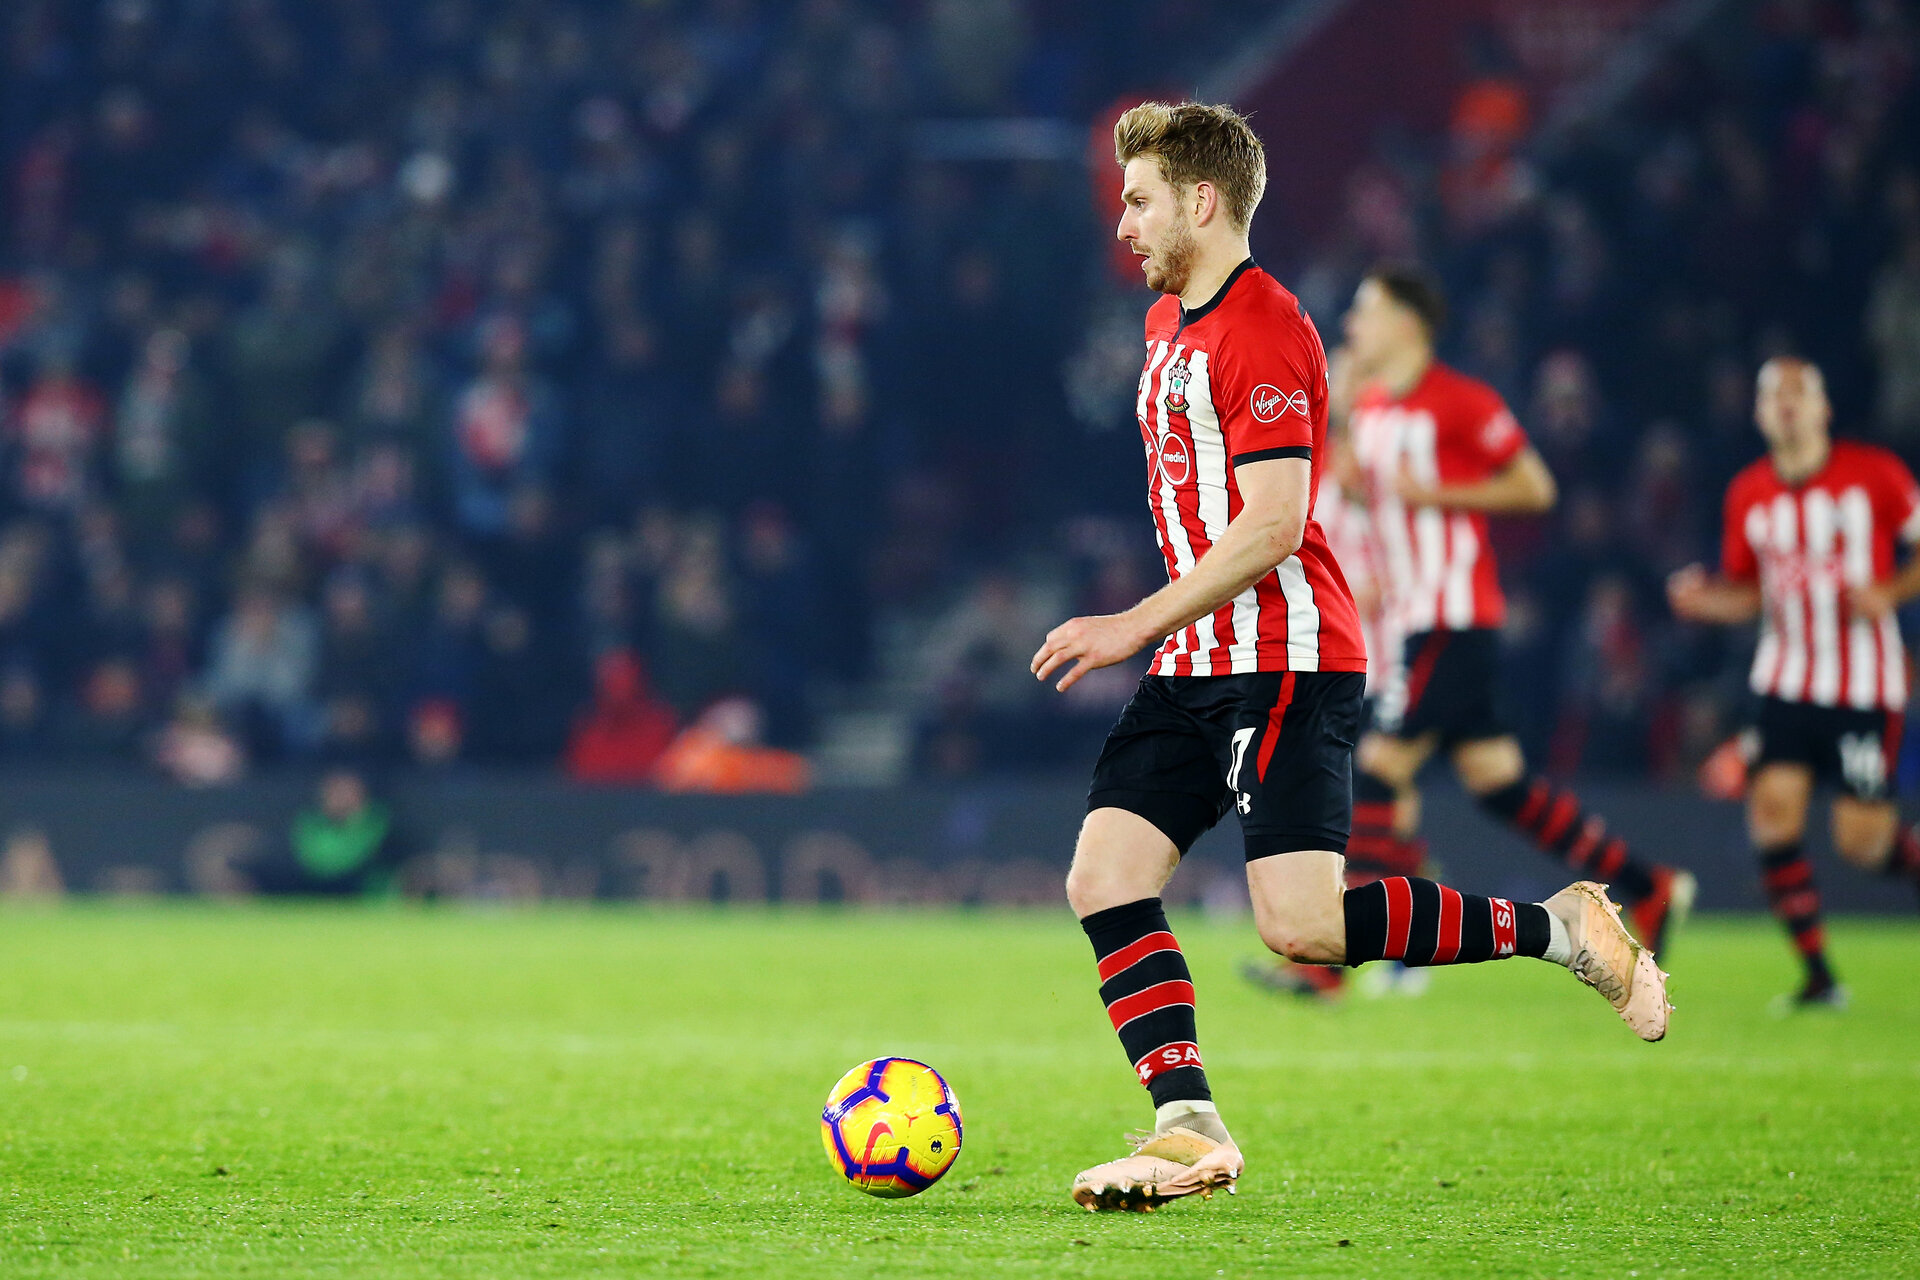 SOUTHAMPTON, ENGLAND - DECEMBER 27: Stuart Armstrong (right) during the Premier League match between Southampton FC and West Ham United at St Mary's Stadium on December 27, 2018 in Southampton, United Kingdom. (Photo by James Bridle - Southampton FC/Southampton FC via Getty Images)